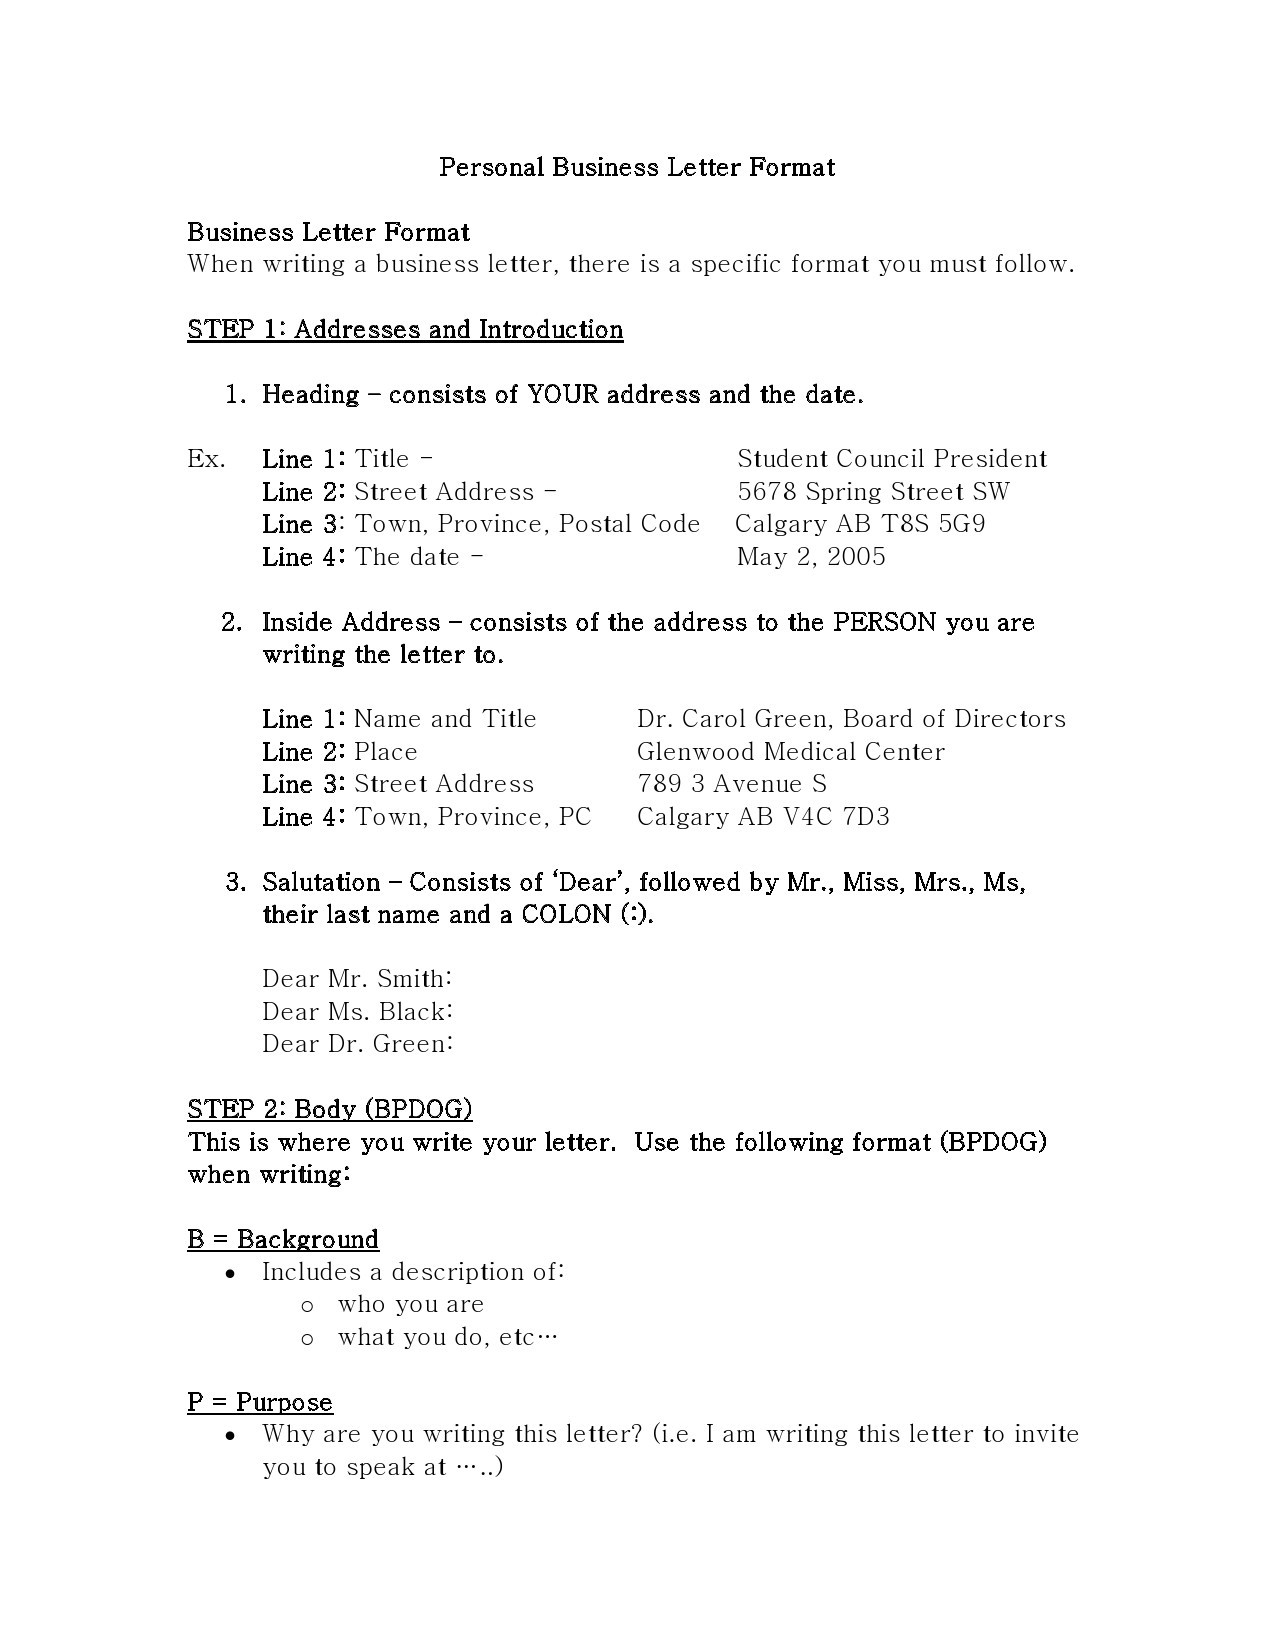 Free personal letter format 11